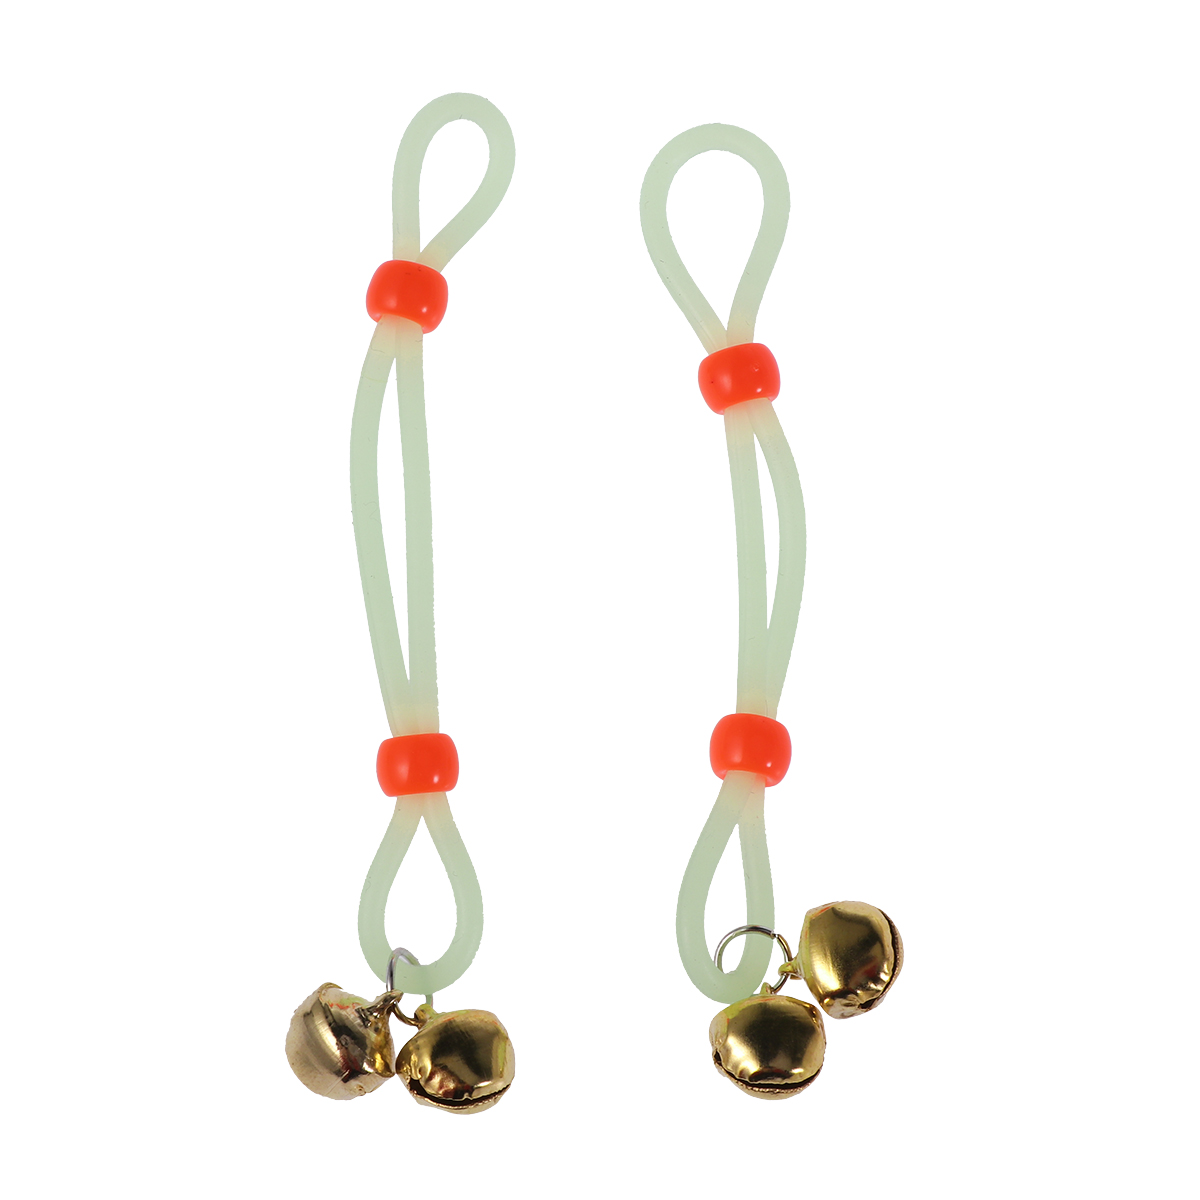 1 Pair Luminous Rope Nipple Clamps Adjustable Breast Clips Bell Pendants Sexy Flirting Toy  (Green Rope Golden Bell)